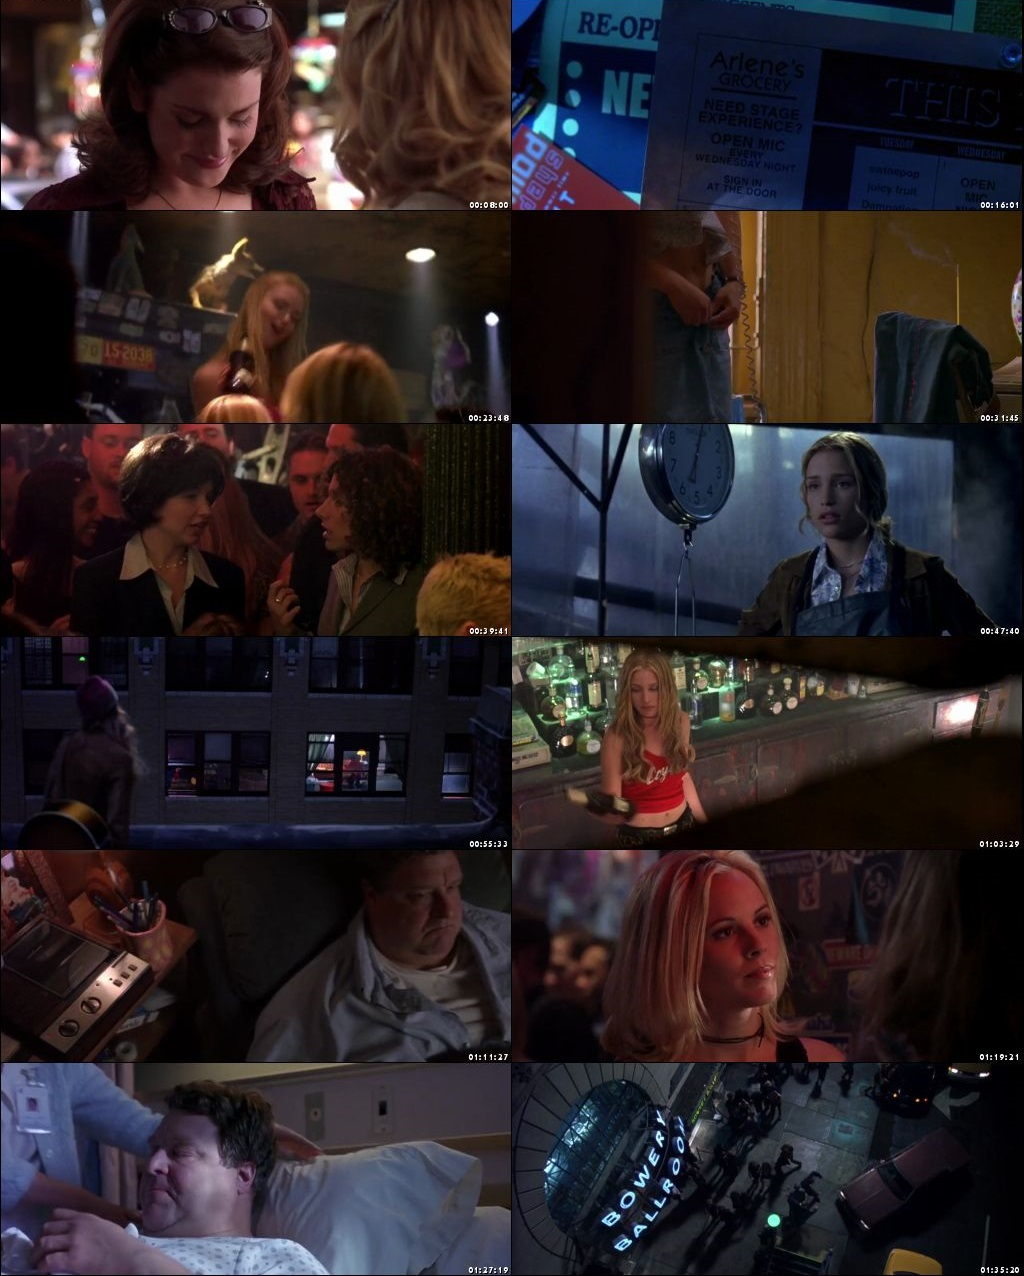 Coyote Ugly 2000 latest movies free download, Coyote Ugly 2000 hd movies download, Coyote Ugly 2000 new movie download,Coyote Ugly 2000 download free movies online, Coyote Ugly 2000 hd movies free download